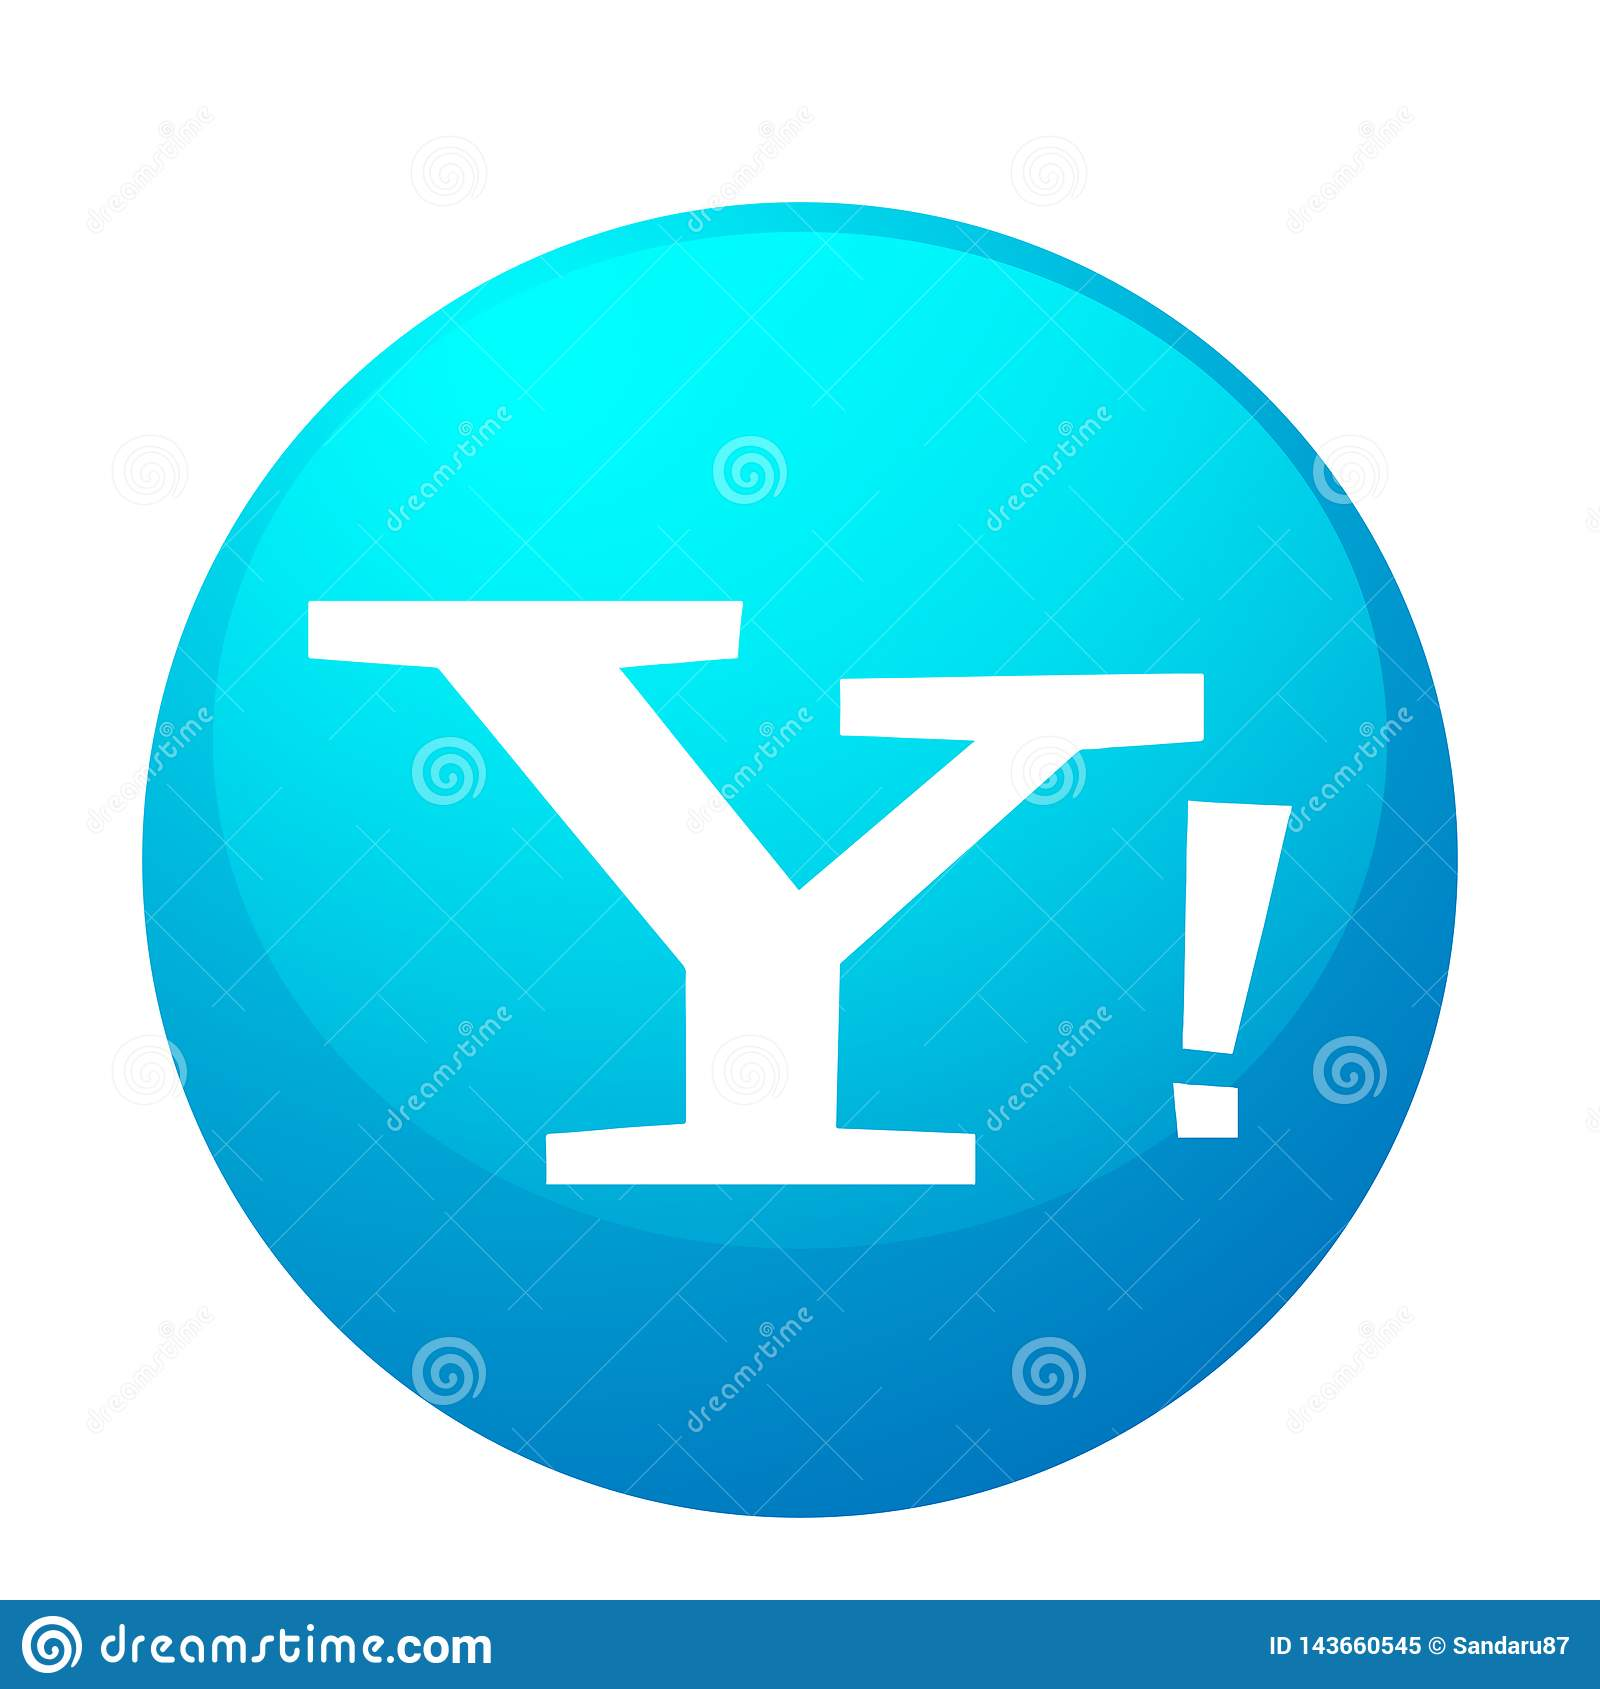 Yahoo Mail Social Media Logo Button Icon In Vector With